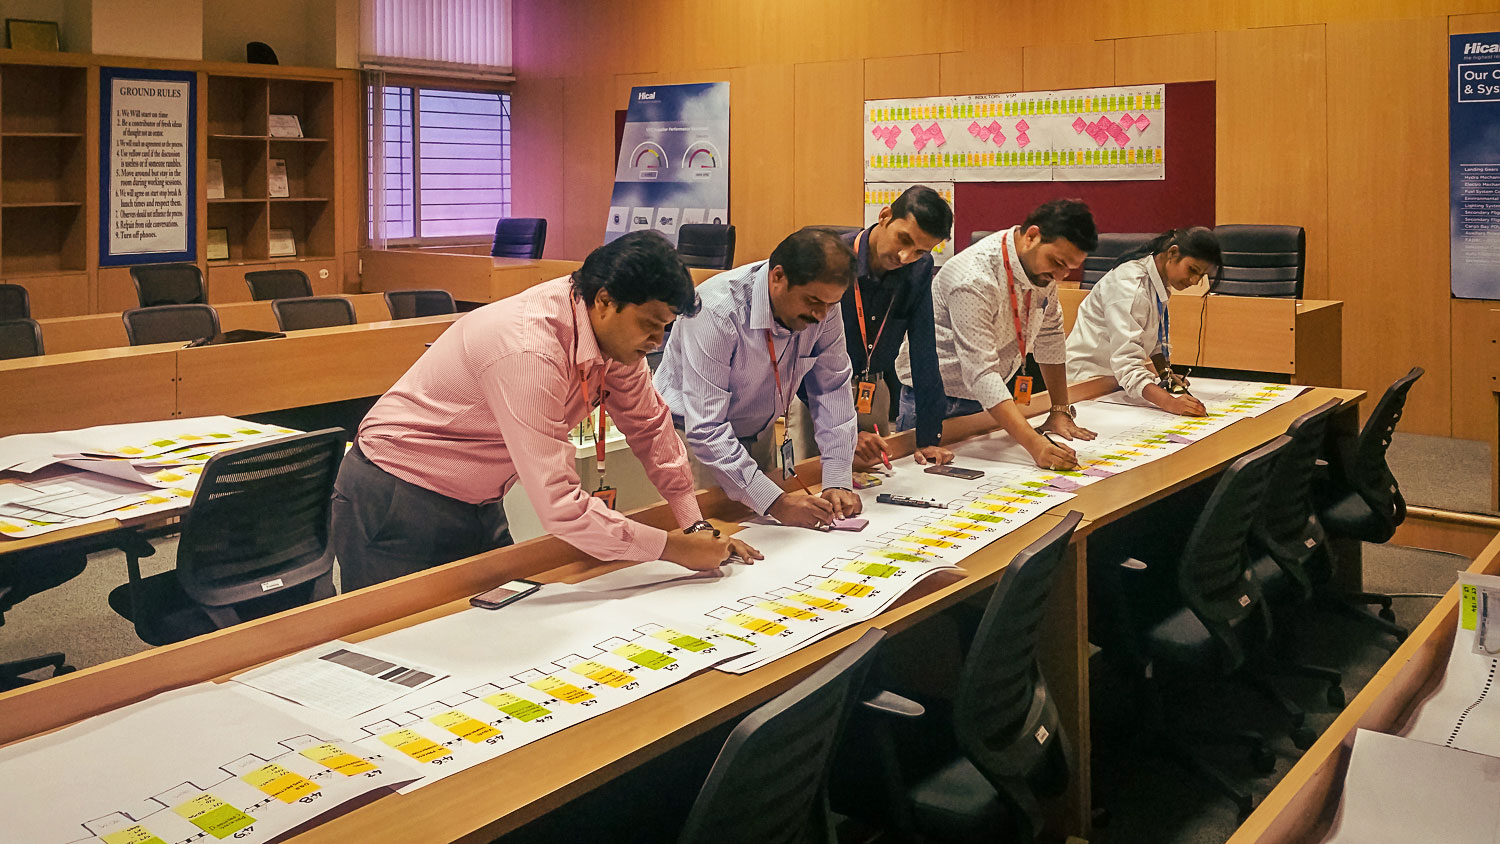 A Value Stream Mapping exercise in progress at Hical …